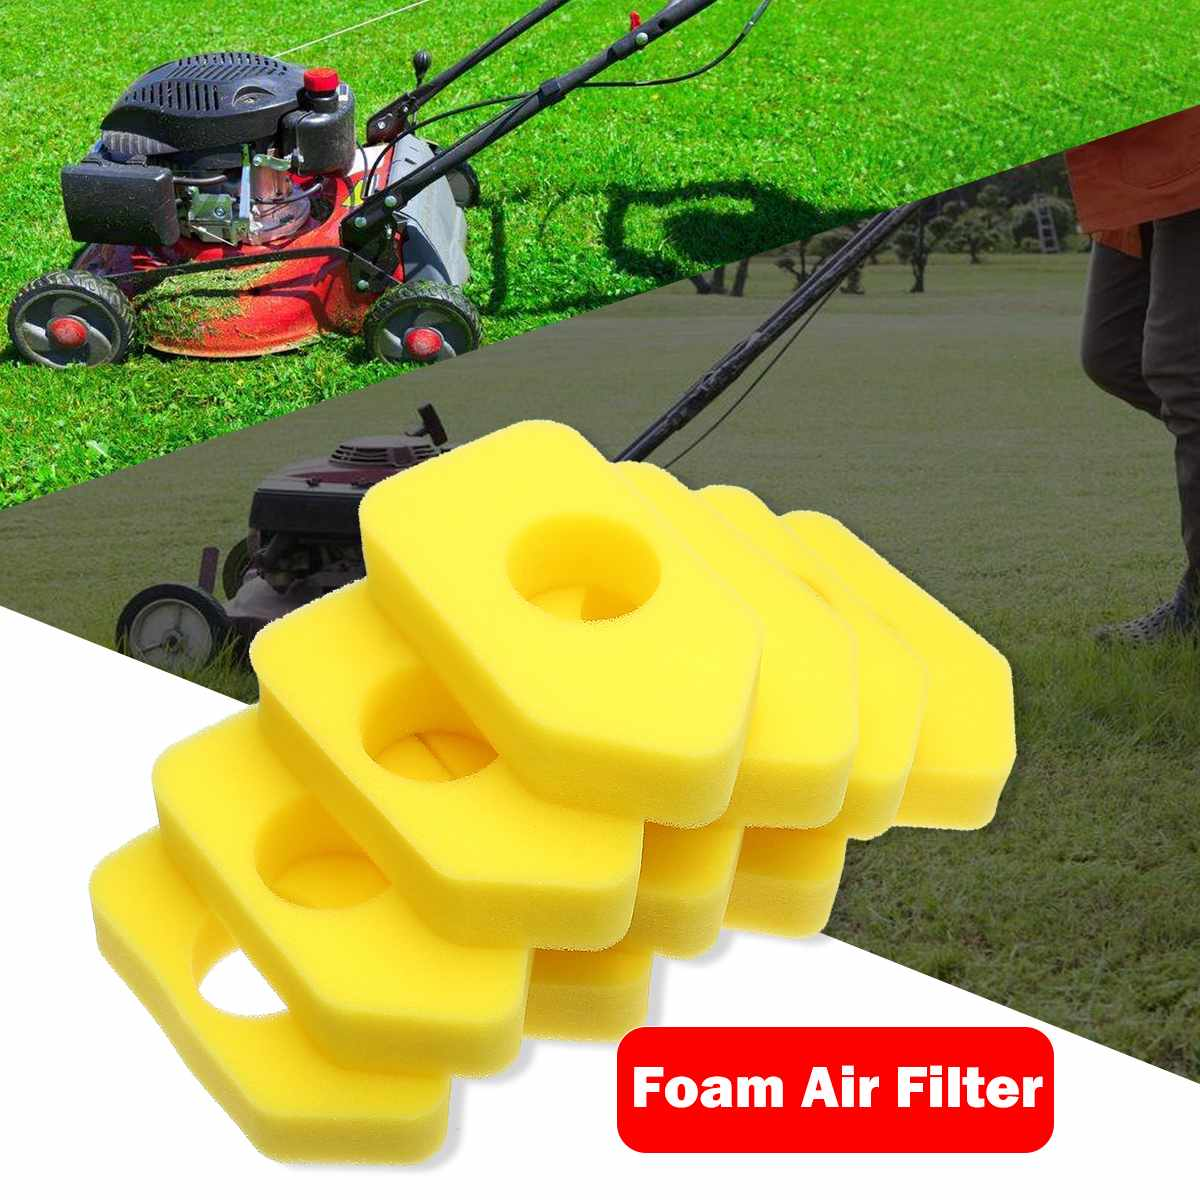 10x Yellow Foam Air Filter For Briggs & Stratton 698369 4216 5088 490-200-0011 Lawn Mower Air Filter Element